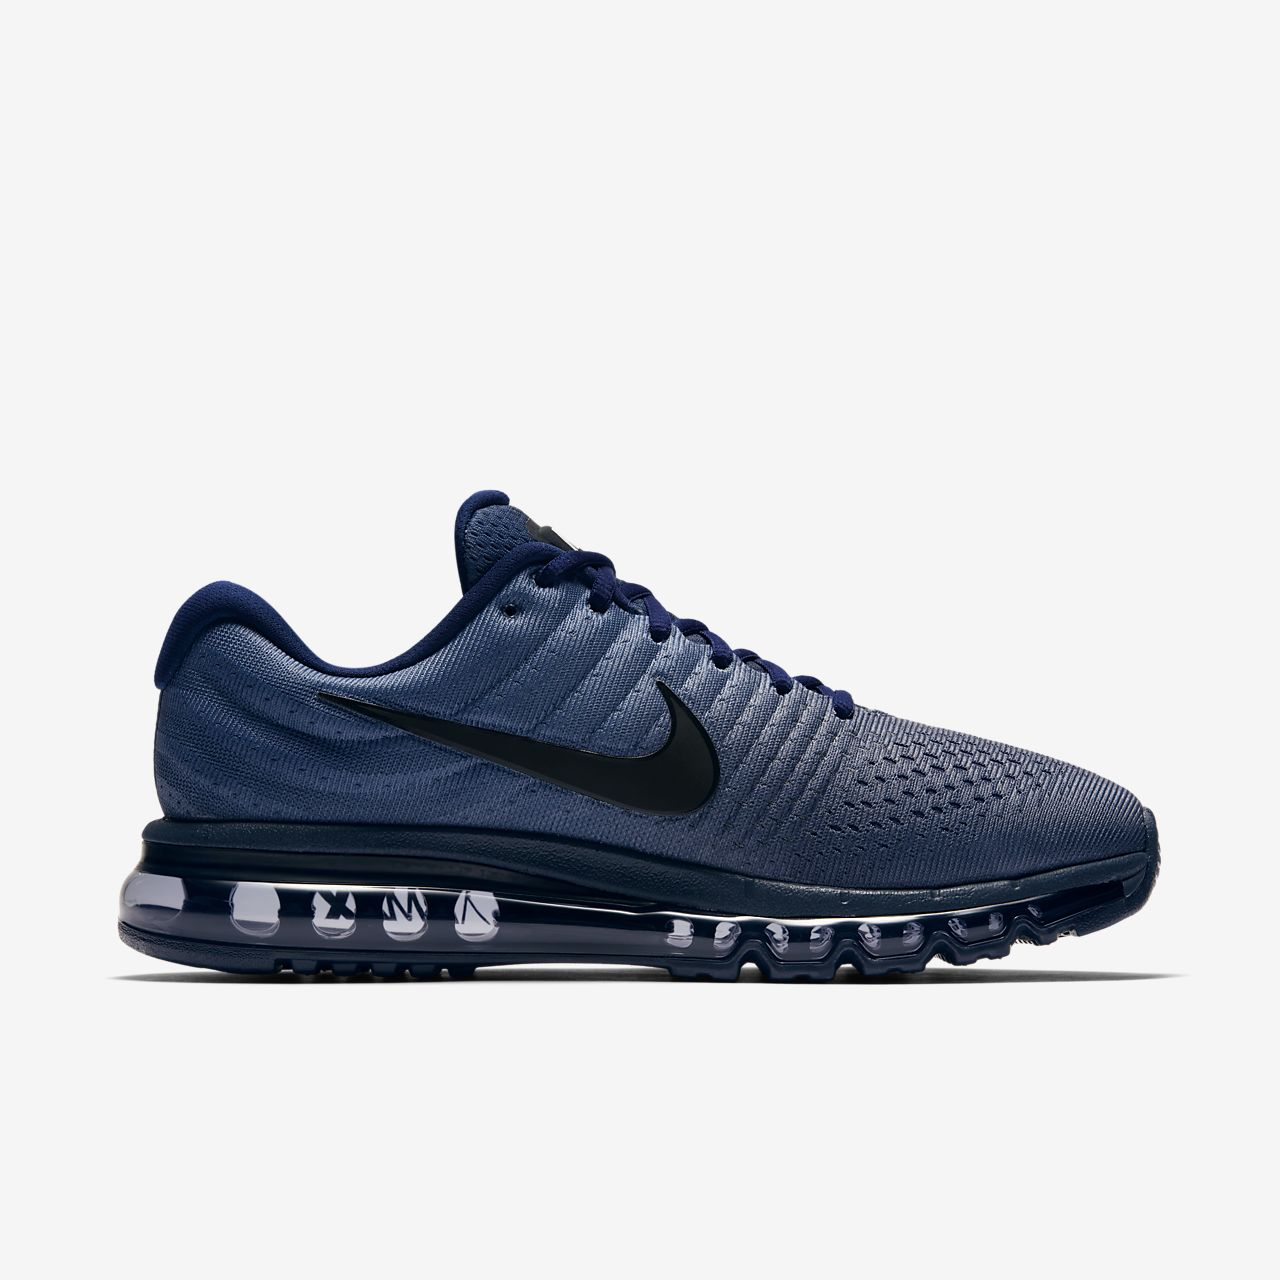 mike air max 2017 uomo